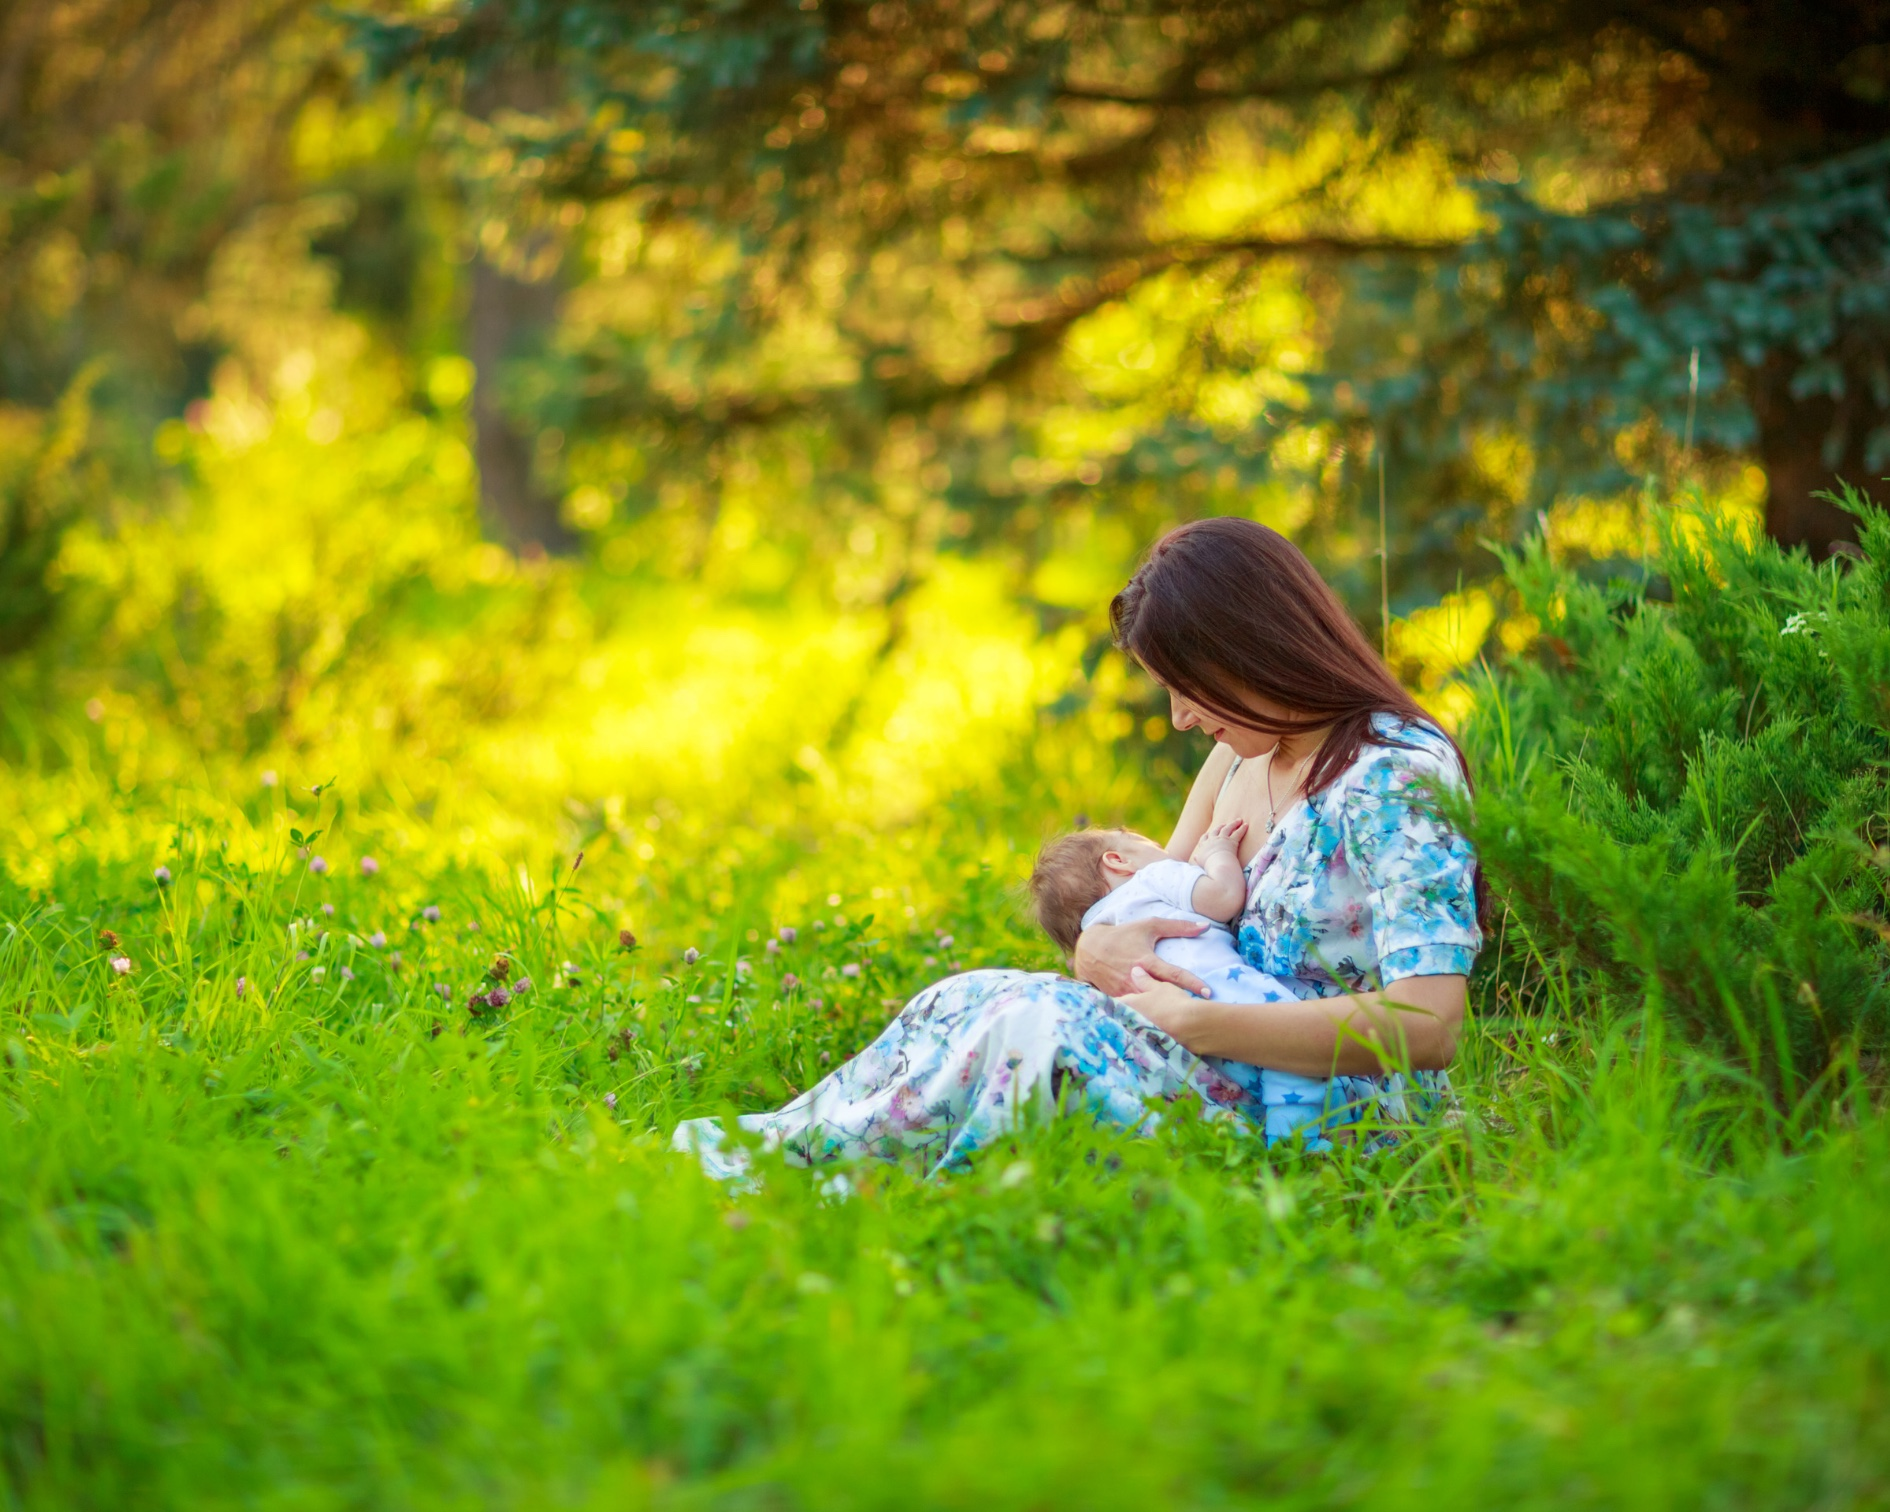 Image of woman in green grass with forest behind her in a floral dress nursing a baby.